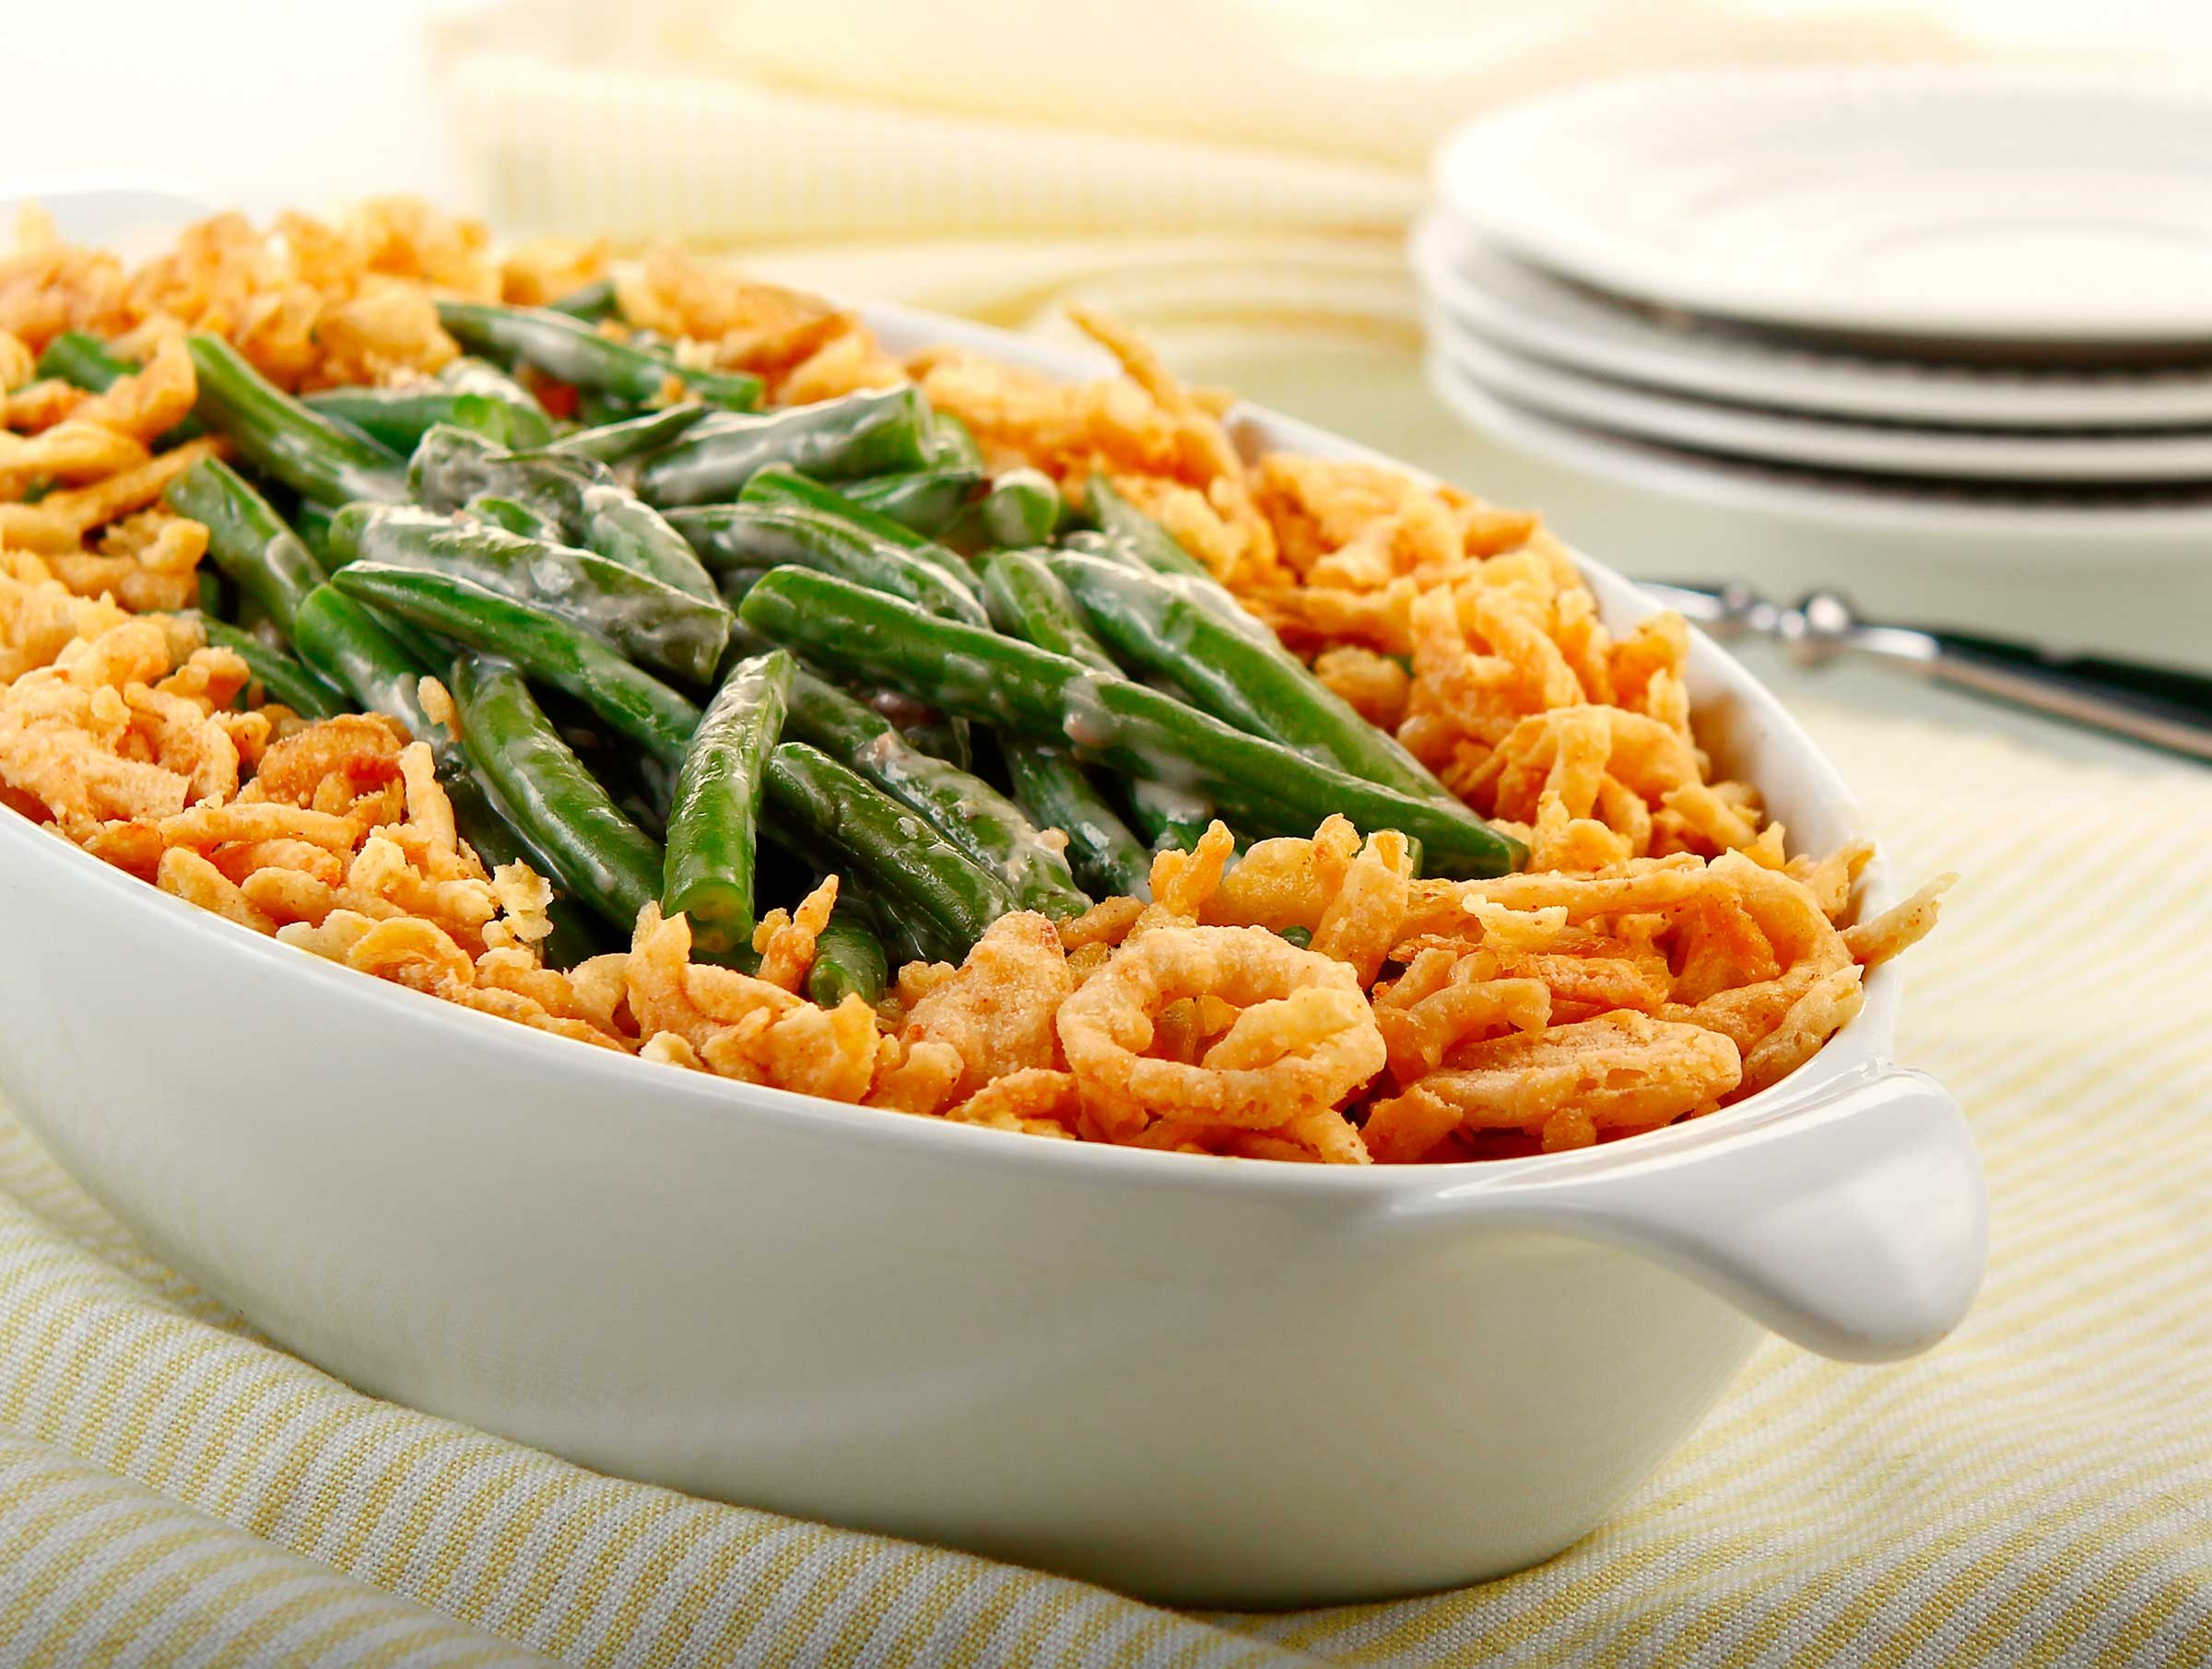 Green bean casserole: 110 calories, 8 g fat per 2/3 cup